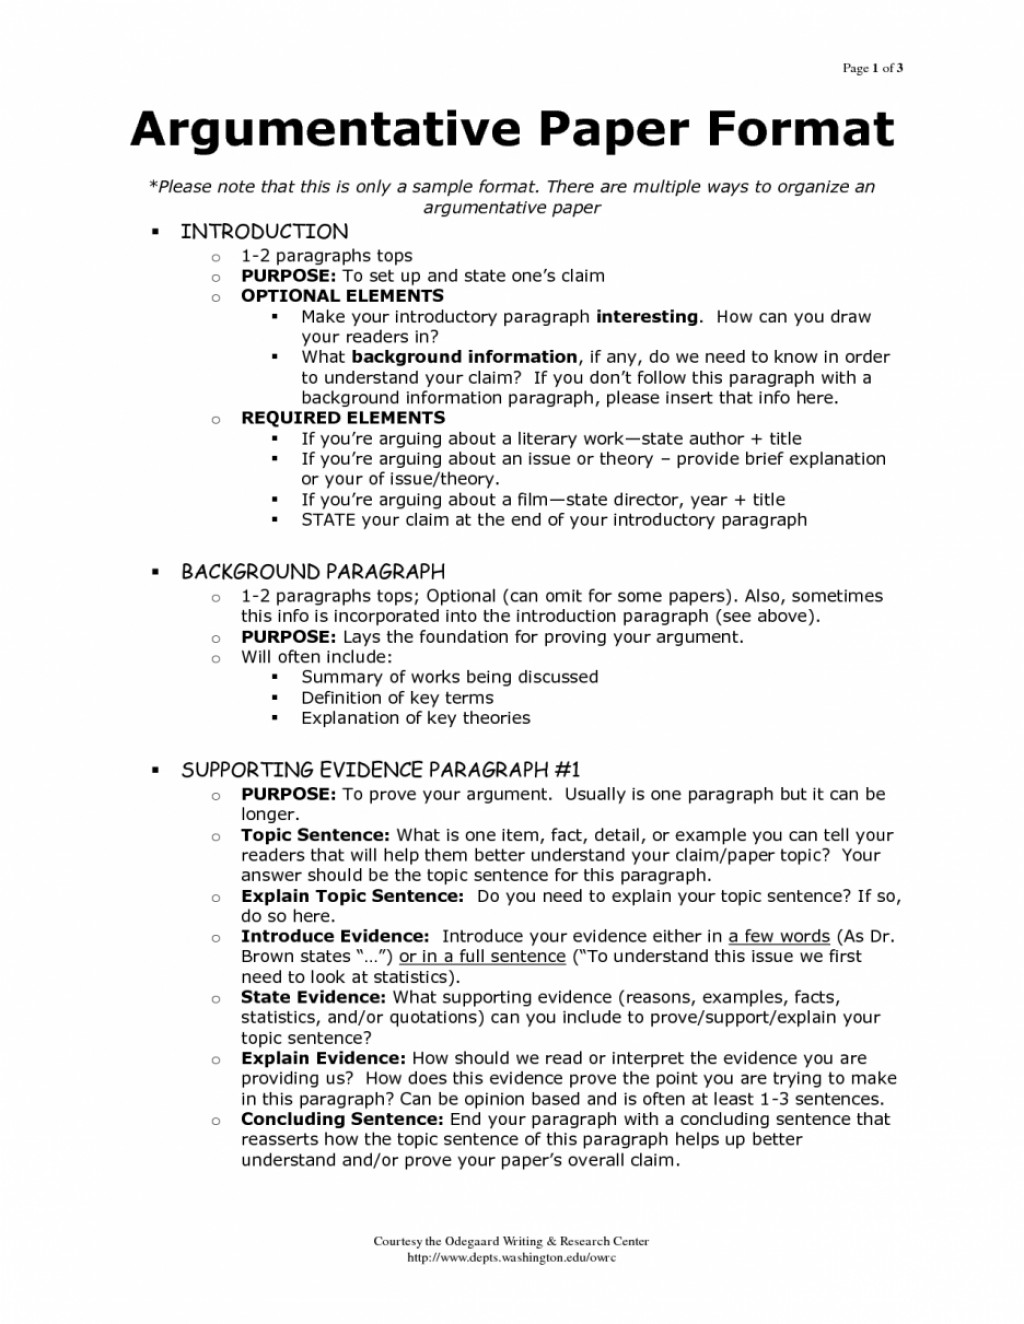 016 Essay Example Write Outline Writing Personal Statements For Jobs Persuasive Structure Template Read Think Speech Pdf Monroes Motivated Sequence Middle School Word College Kids High Doc Problem Excellent Mla Argumentative Research Paper Large